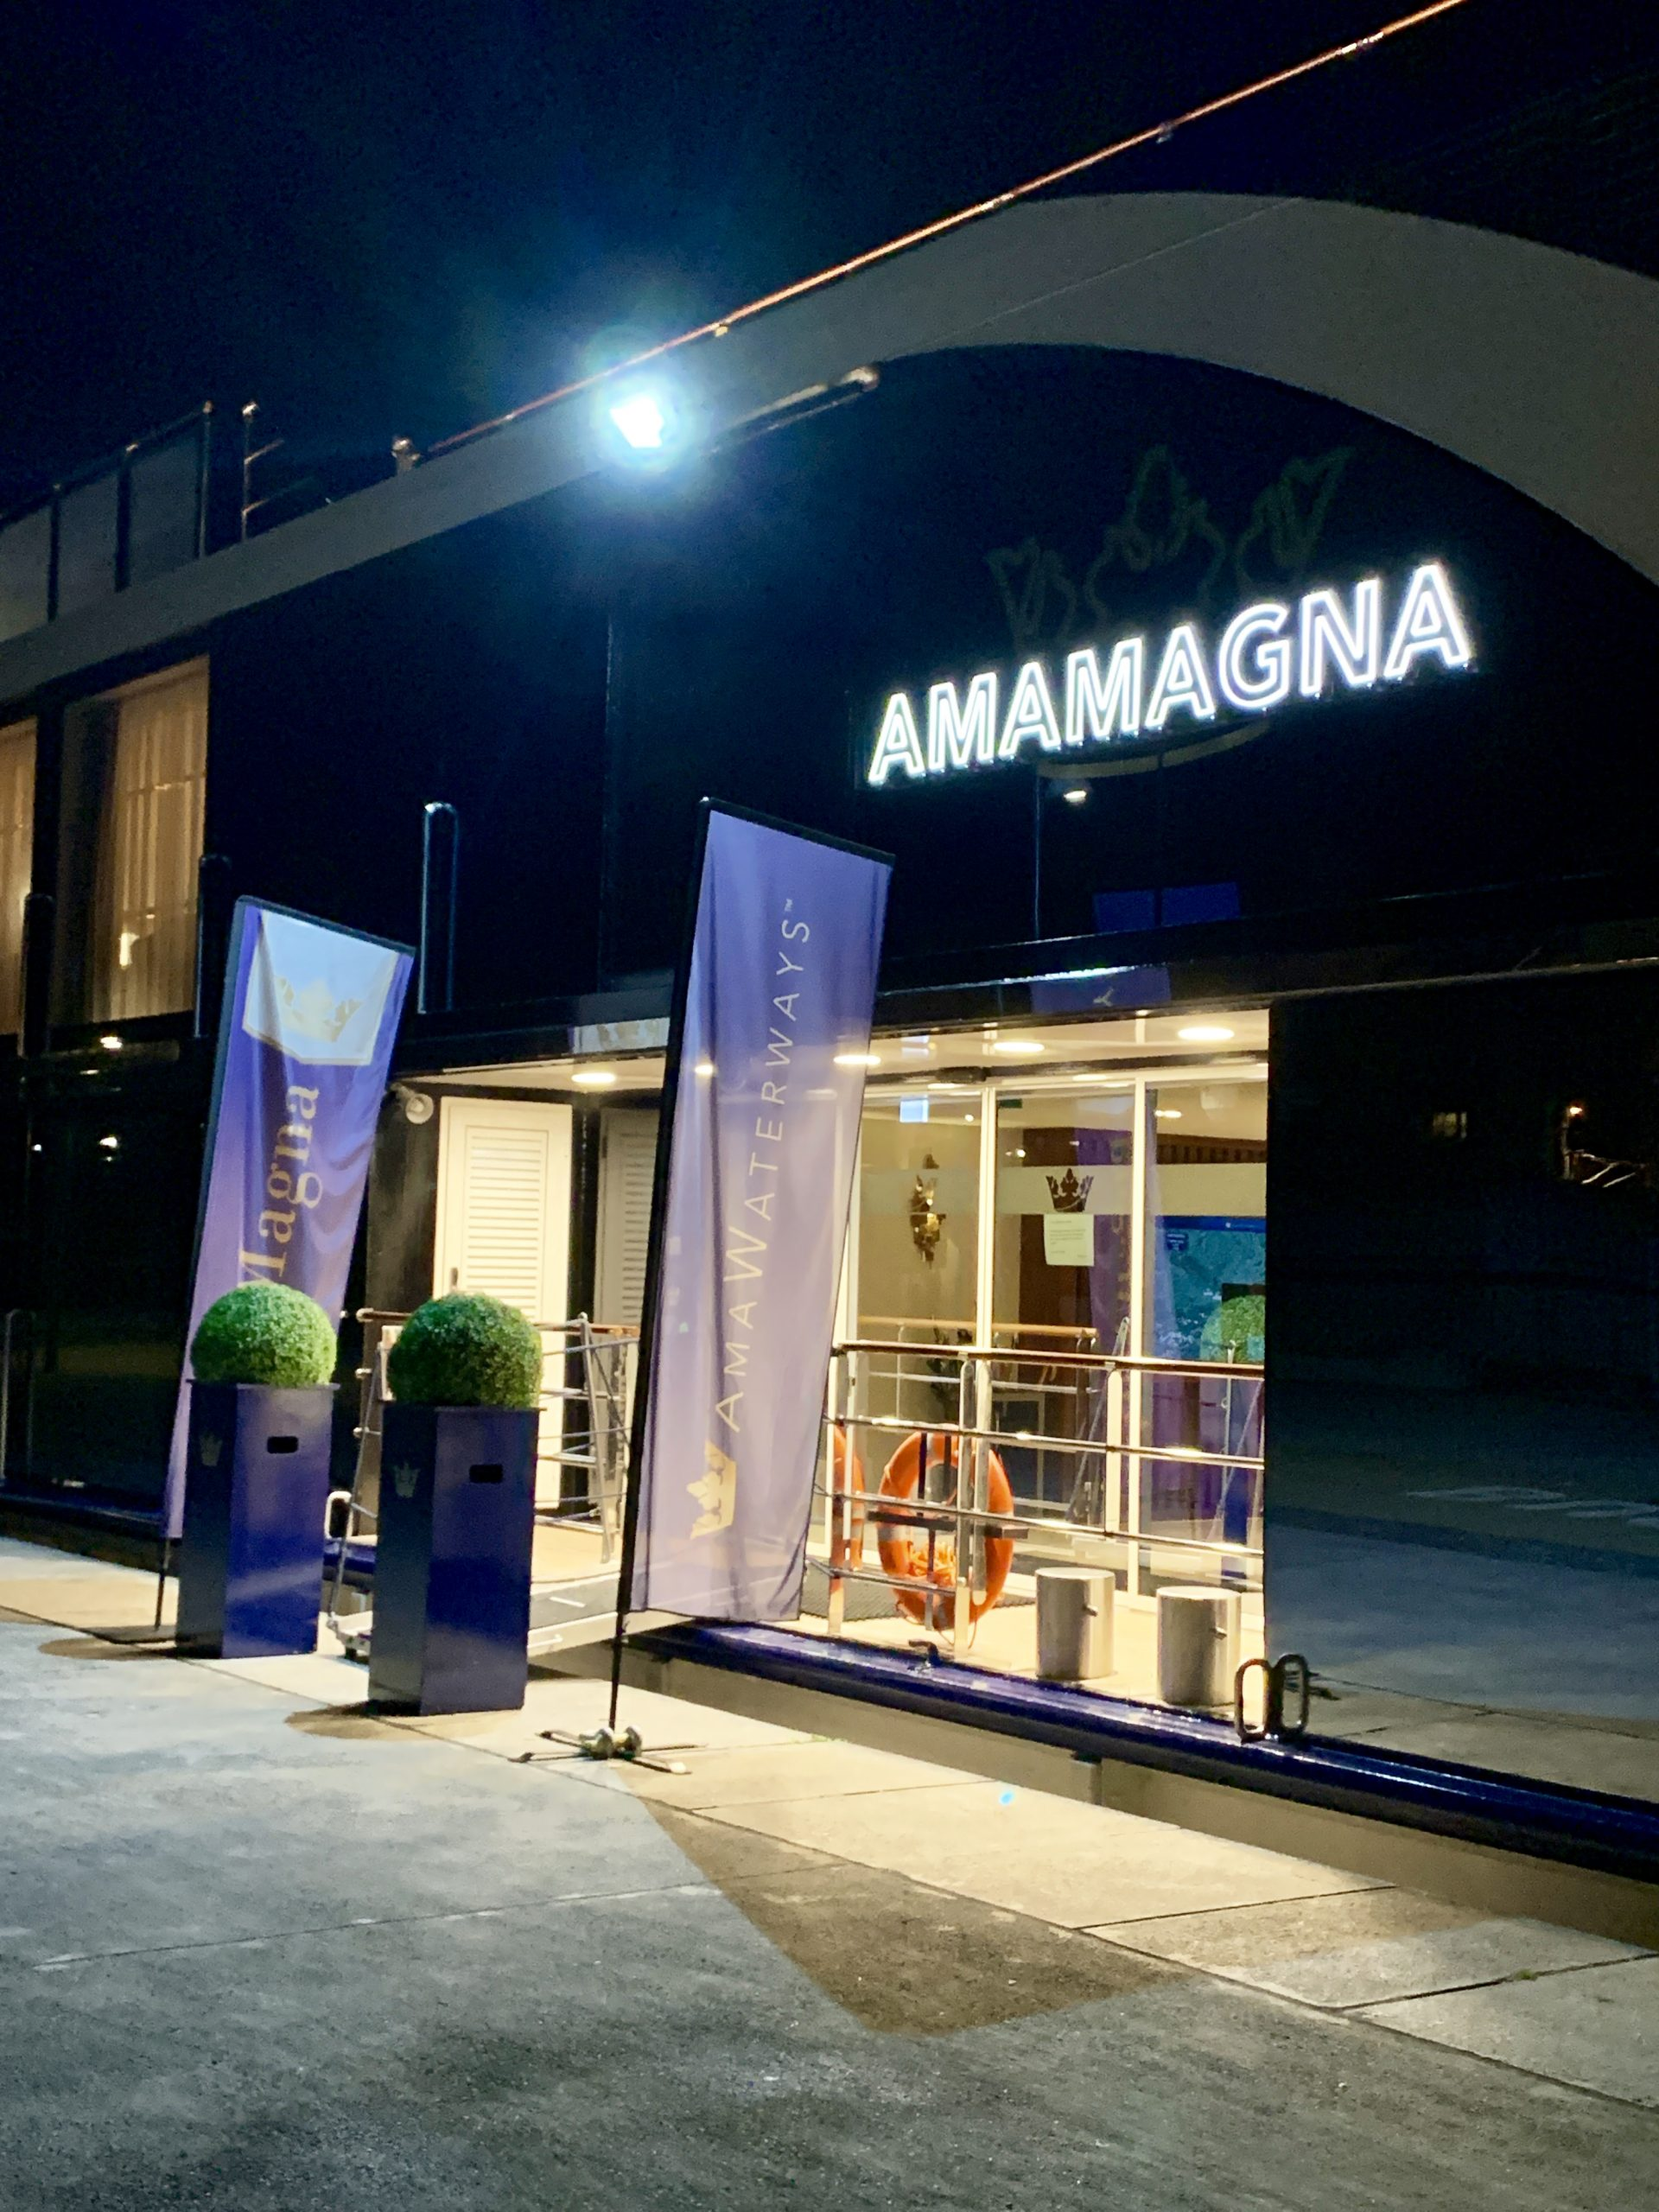 AmaMagna at night